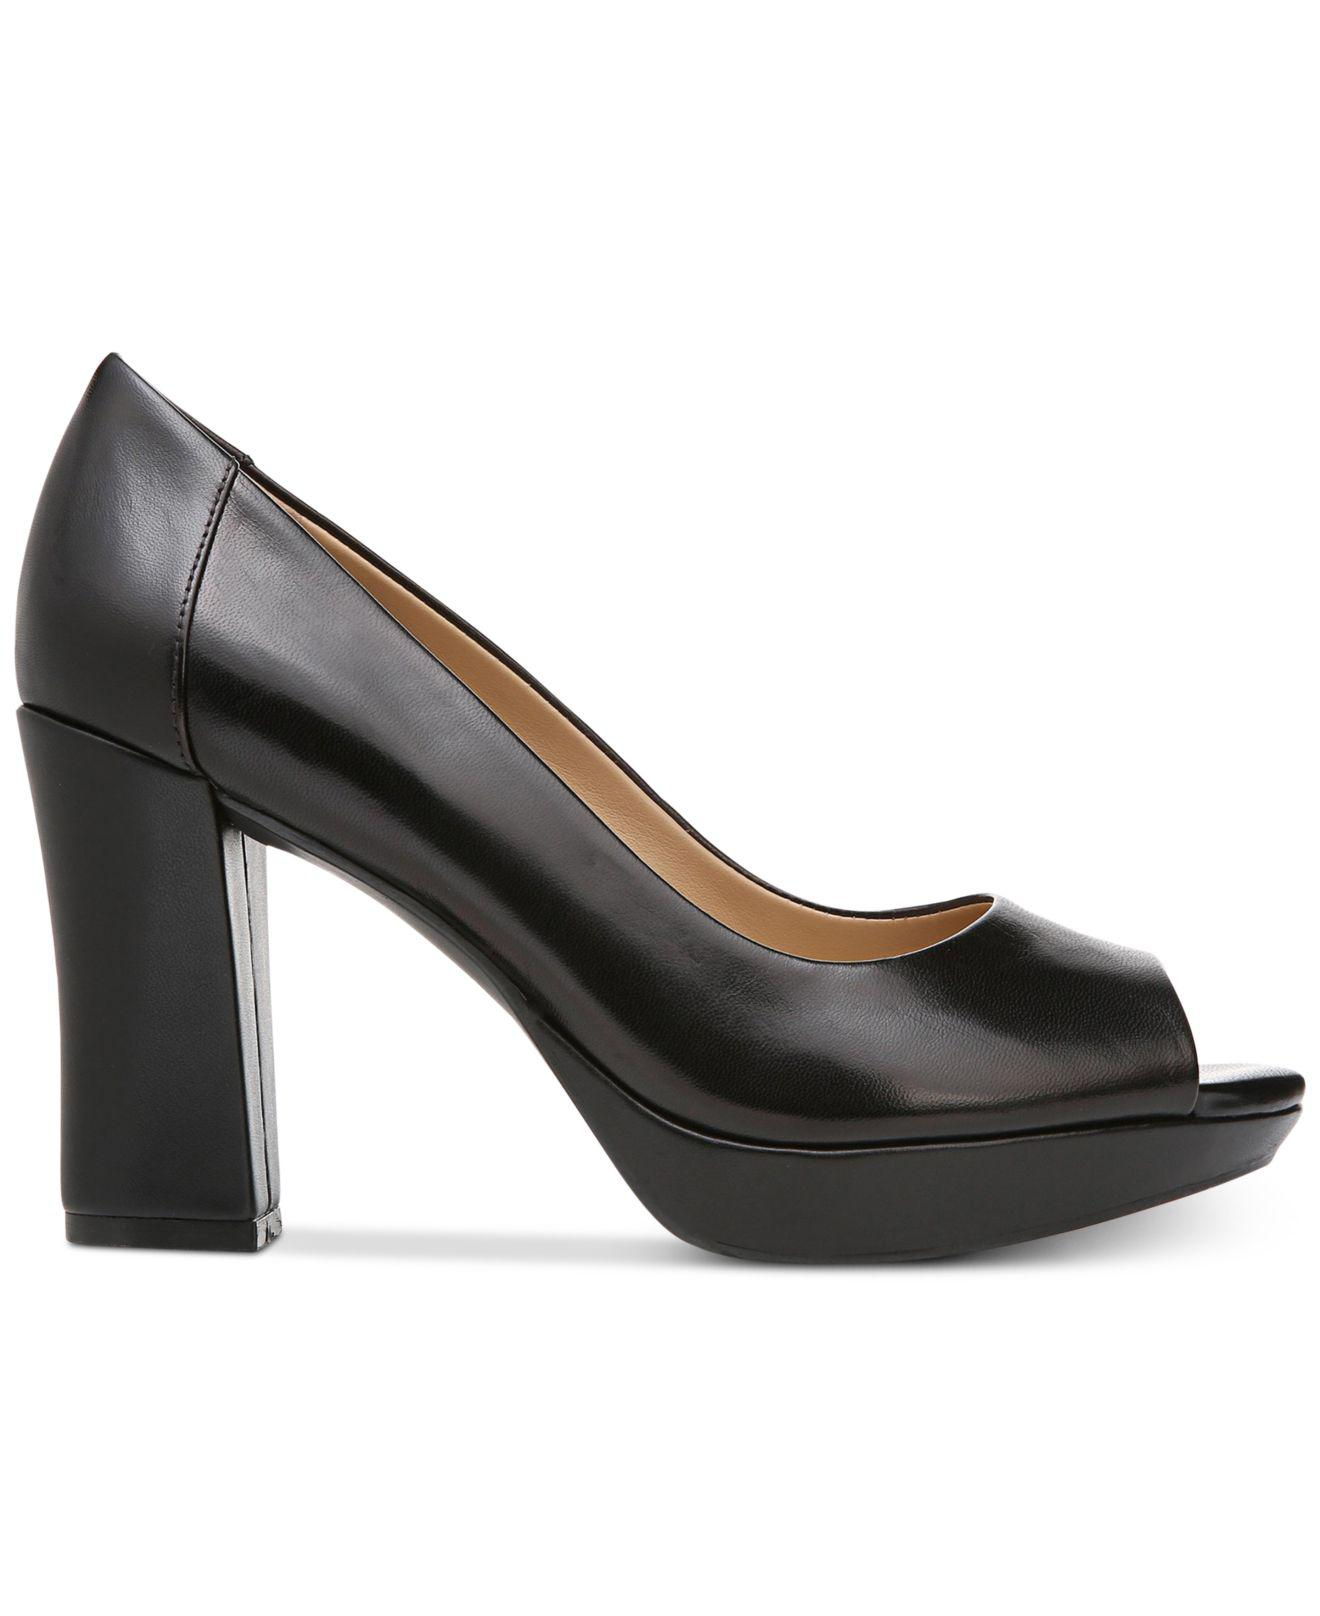 2f0a27b5f6a Lyst - Naturalizer Amie Peep-toe Pumps in Black - Save 62%